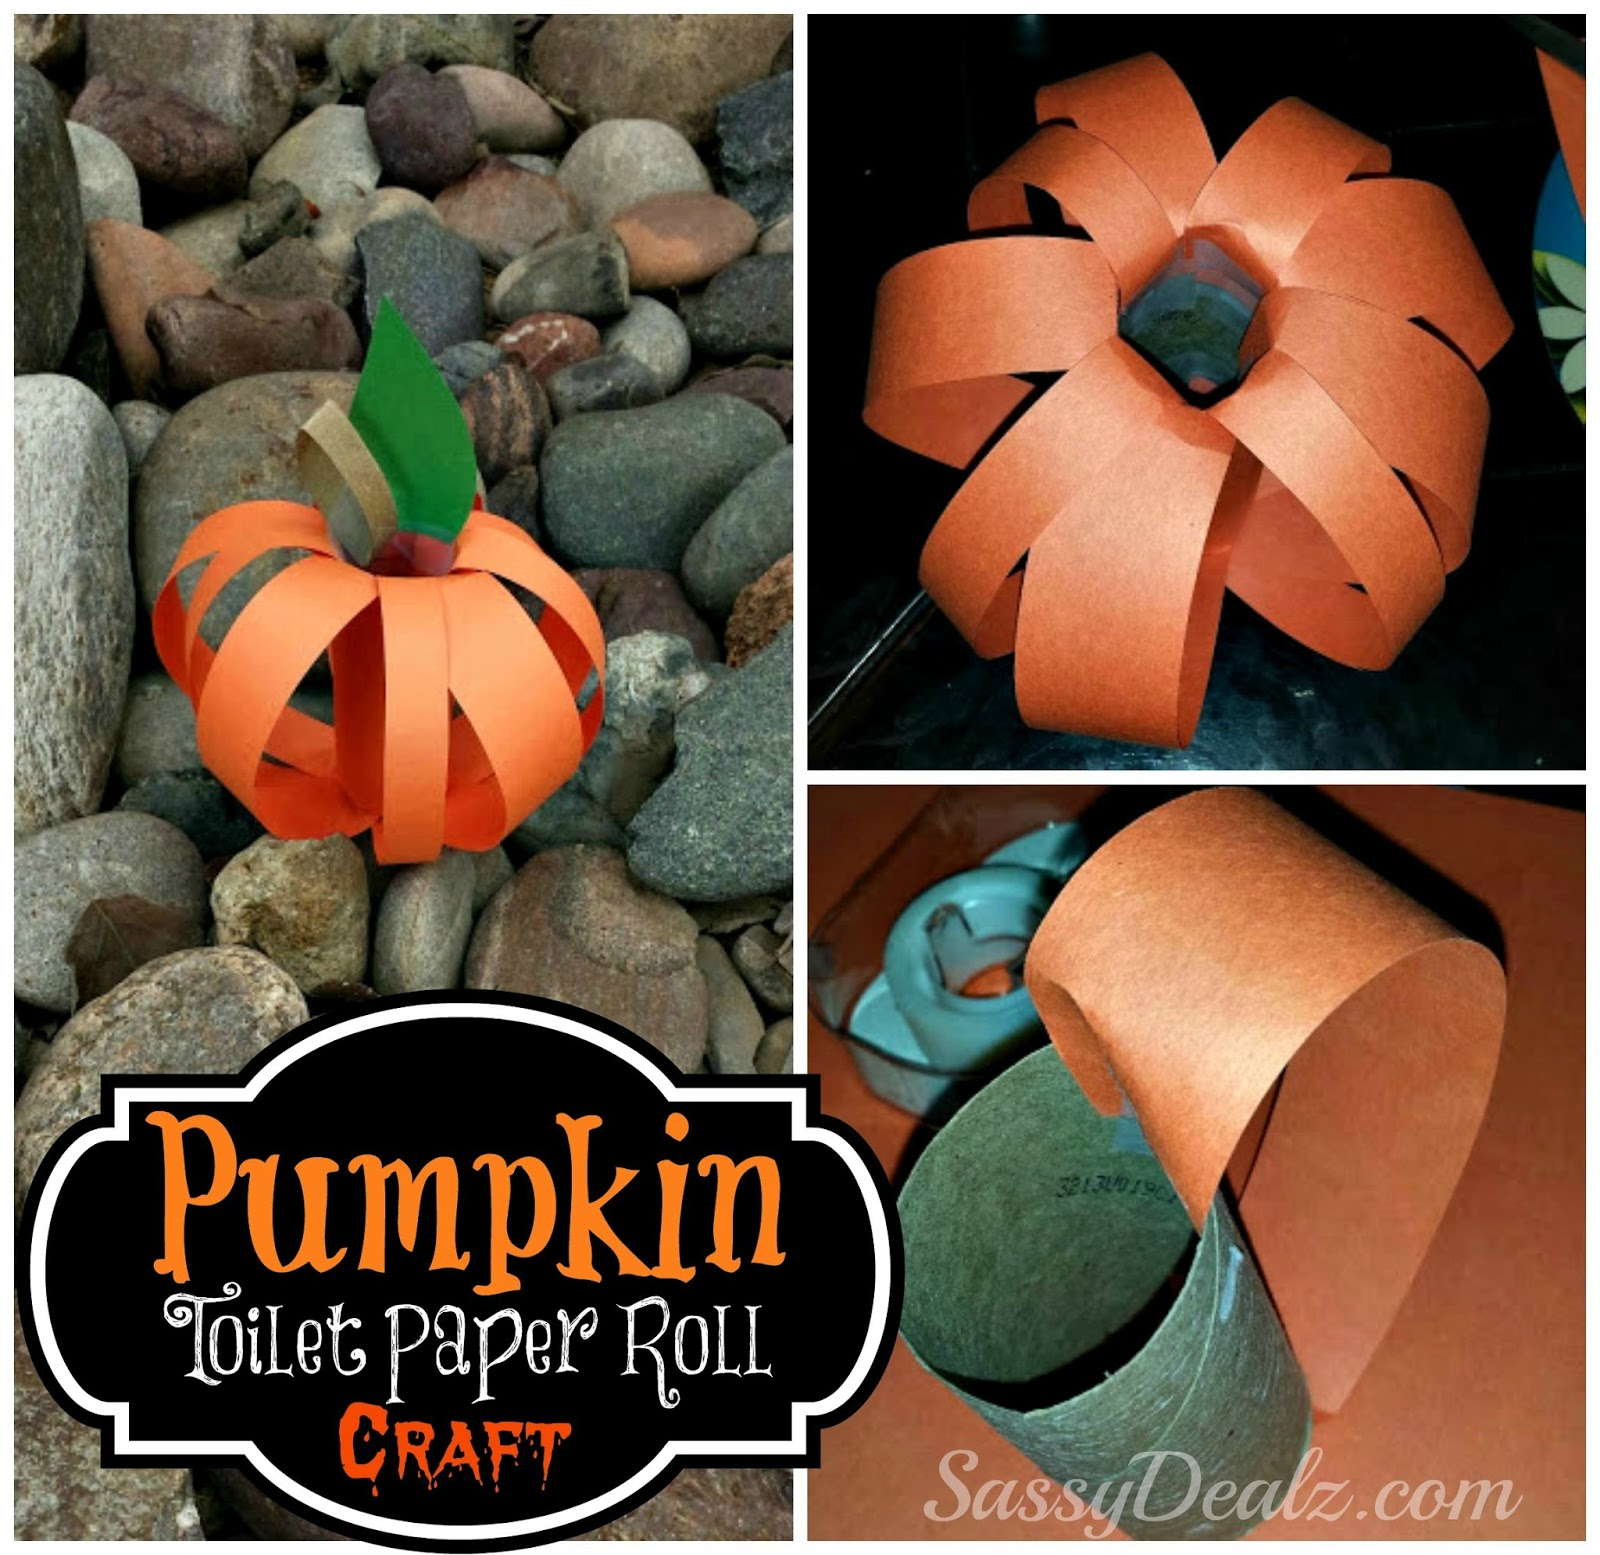 Pumpkin Toilet Paper Roll Craft For Kids Halloween Idea